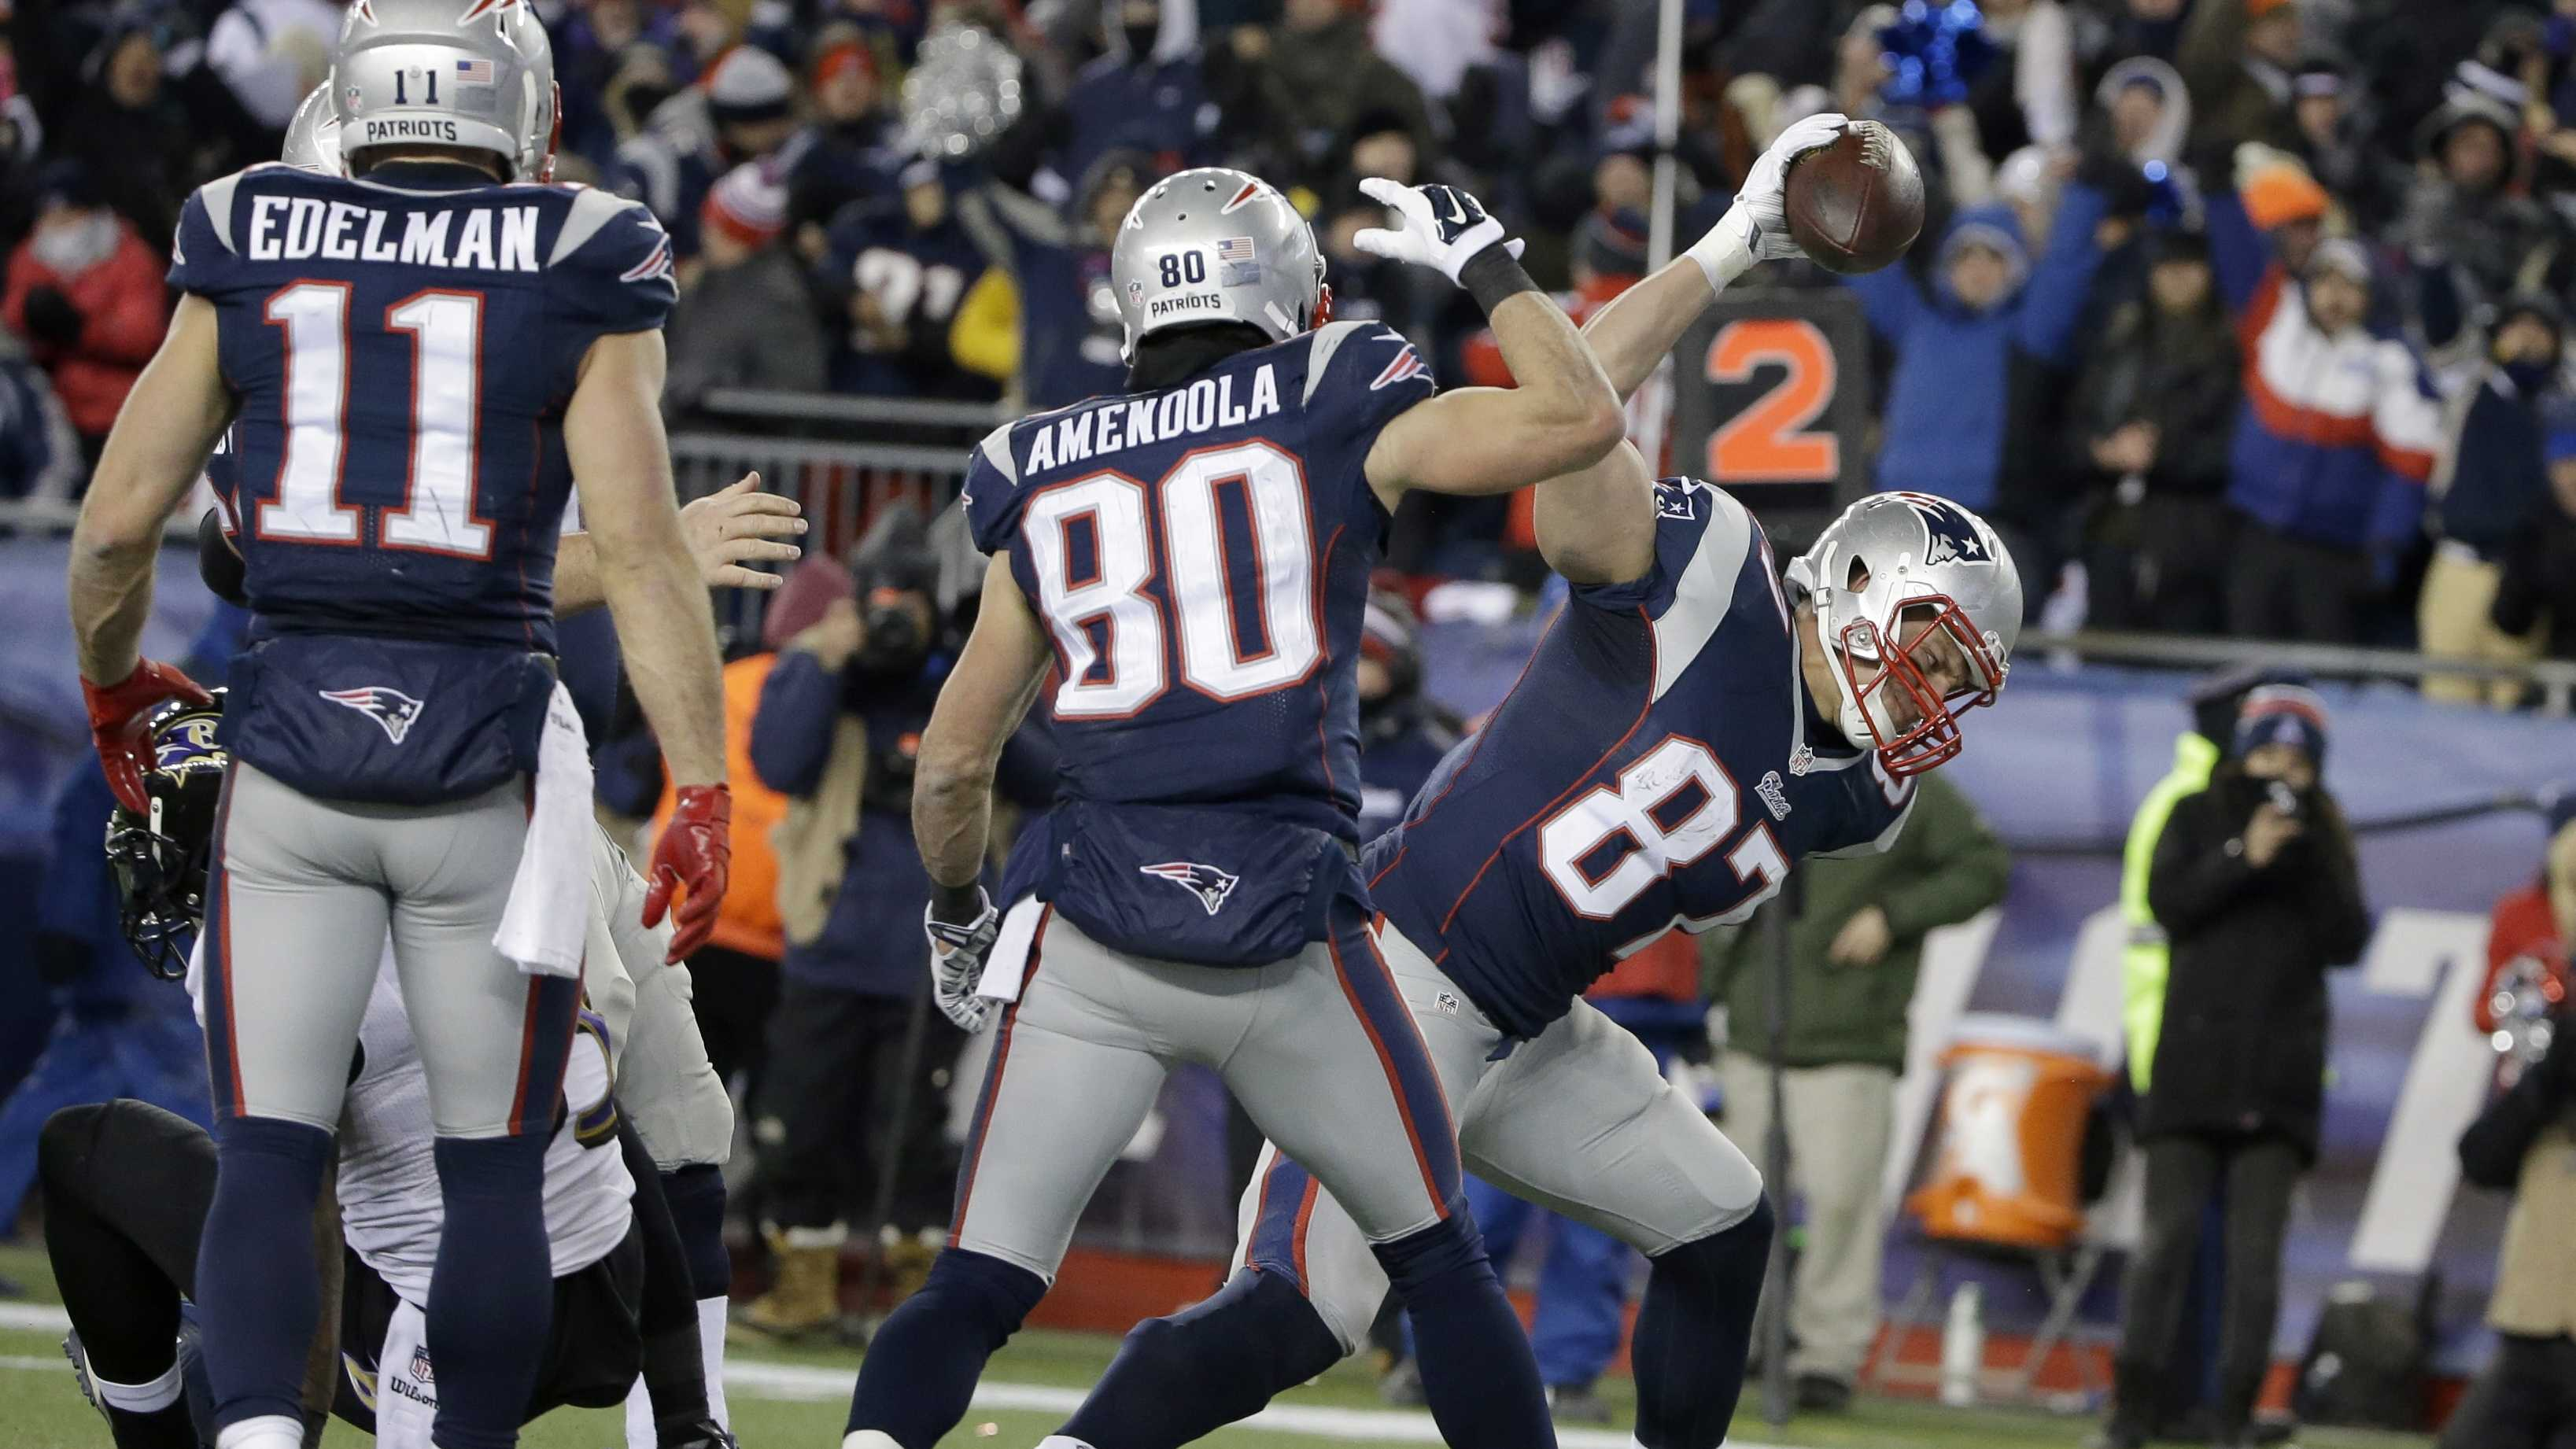 New England Patriots tight end Rob Gronkowski (87) celebrates his touchdown in the second half of an NFL divisional playoff football game against the Baltimore Ravens Saturday, Jan. 10, 2015, in Foxborough, Mass.